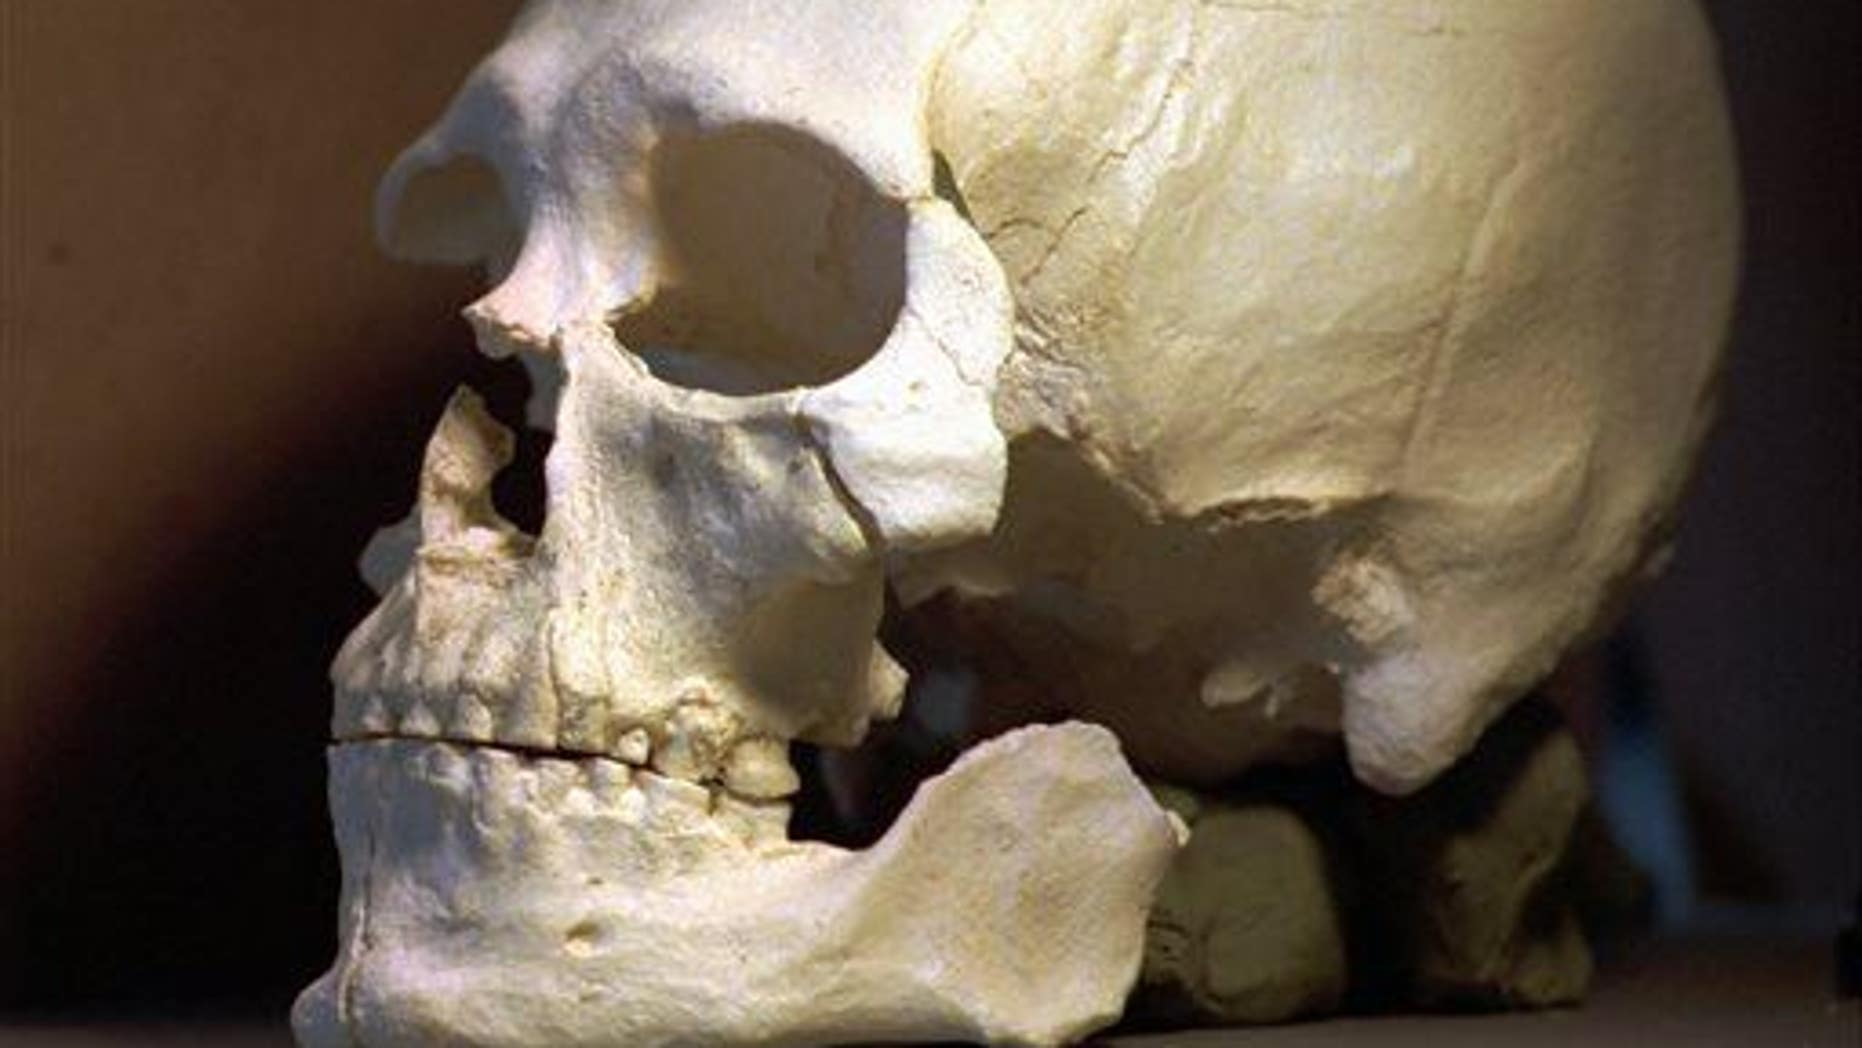 A file photo of a plastic casting of the skull of an ancient skeleton.